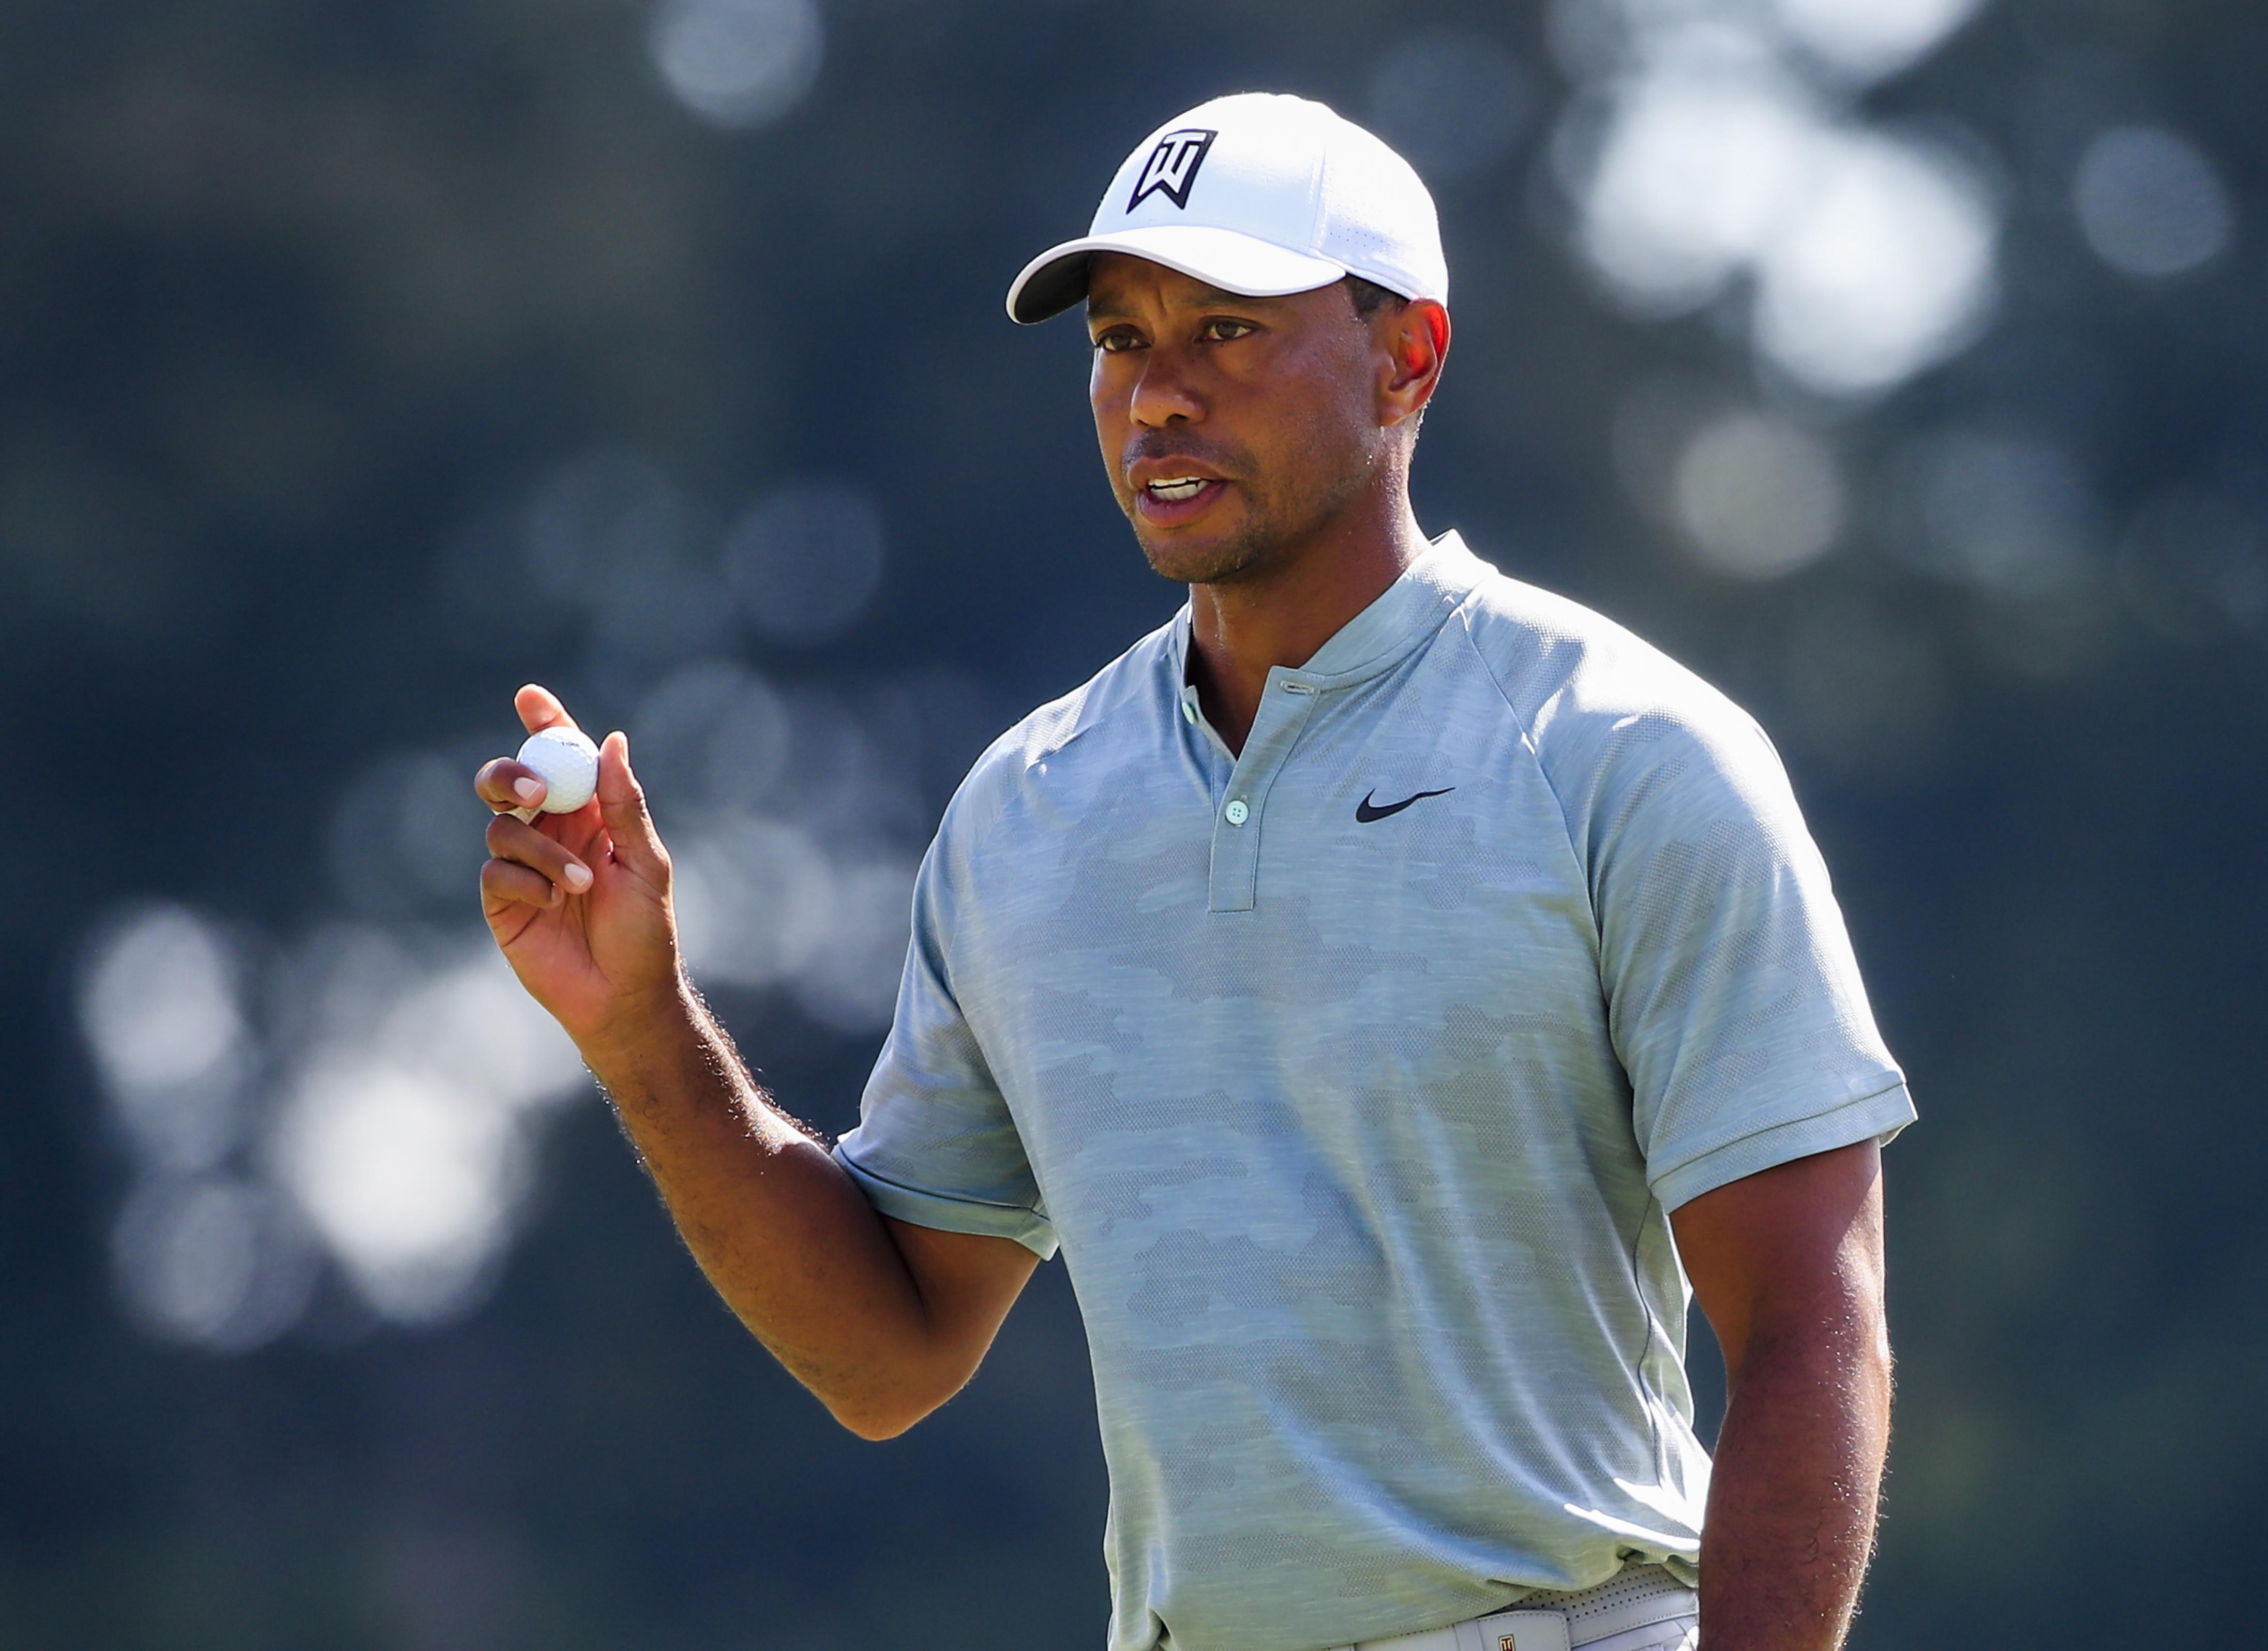 Woods is bidding for his first victory since 2013